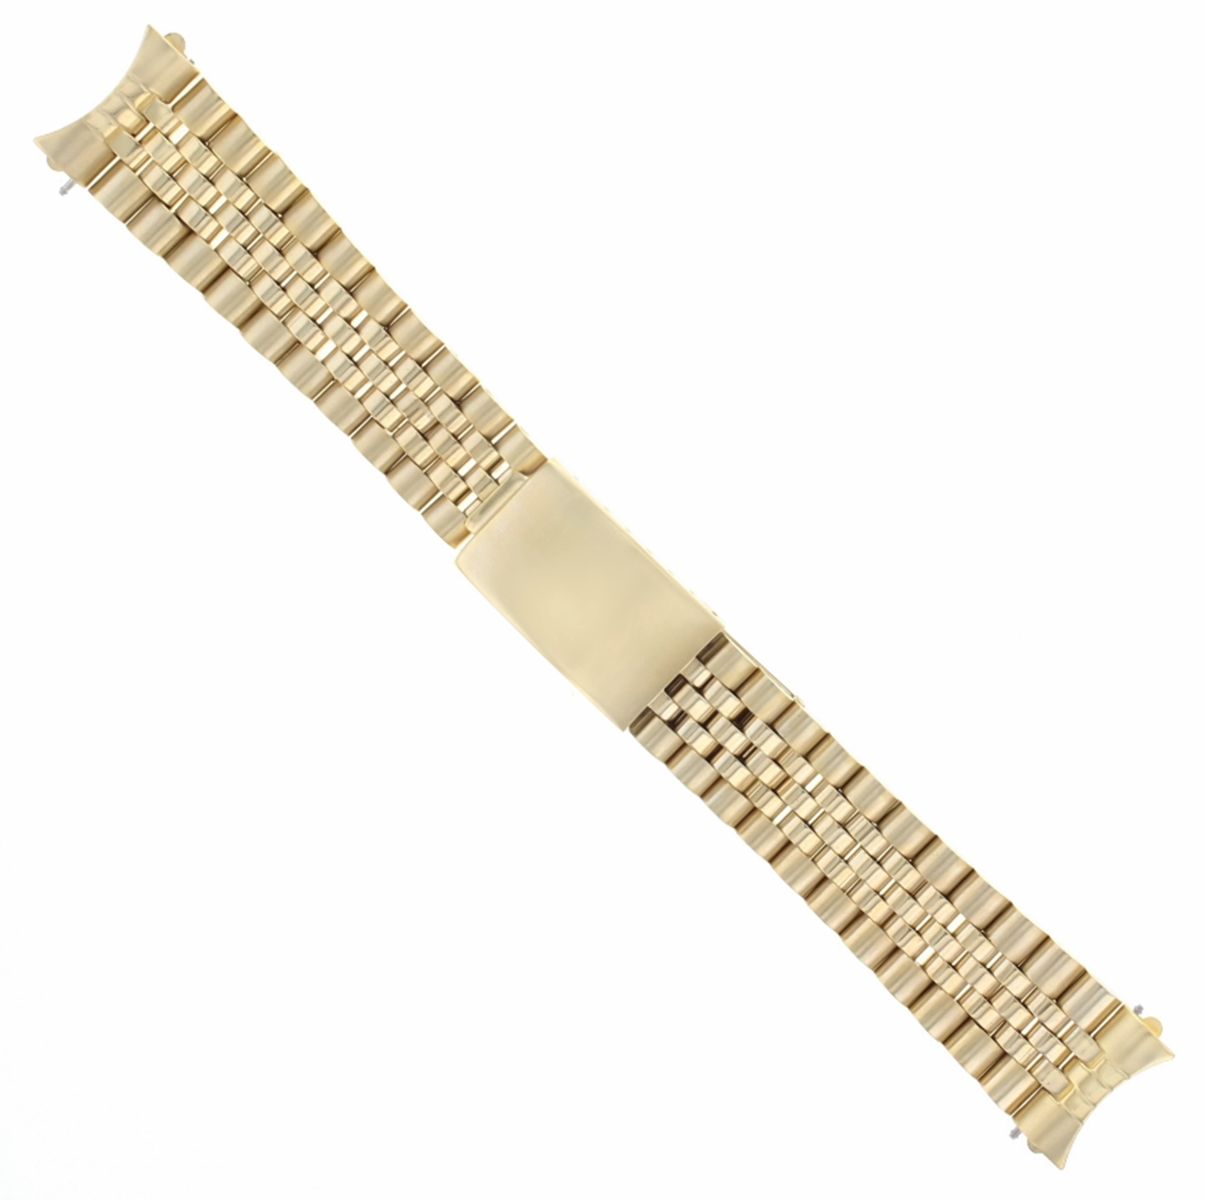 20MM JUBILEE WATCH BAND FOR 36MM ROLEX DATEJUST MEN 16018 16233 16234 16238 GOLD